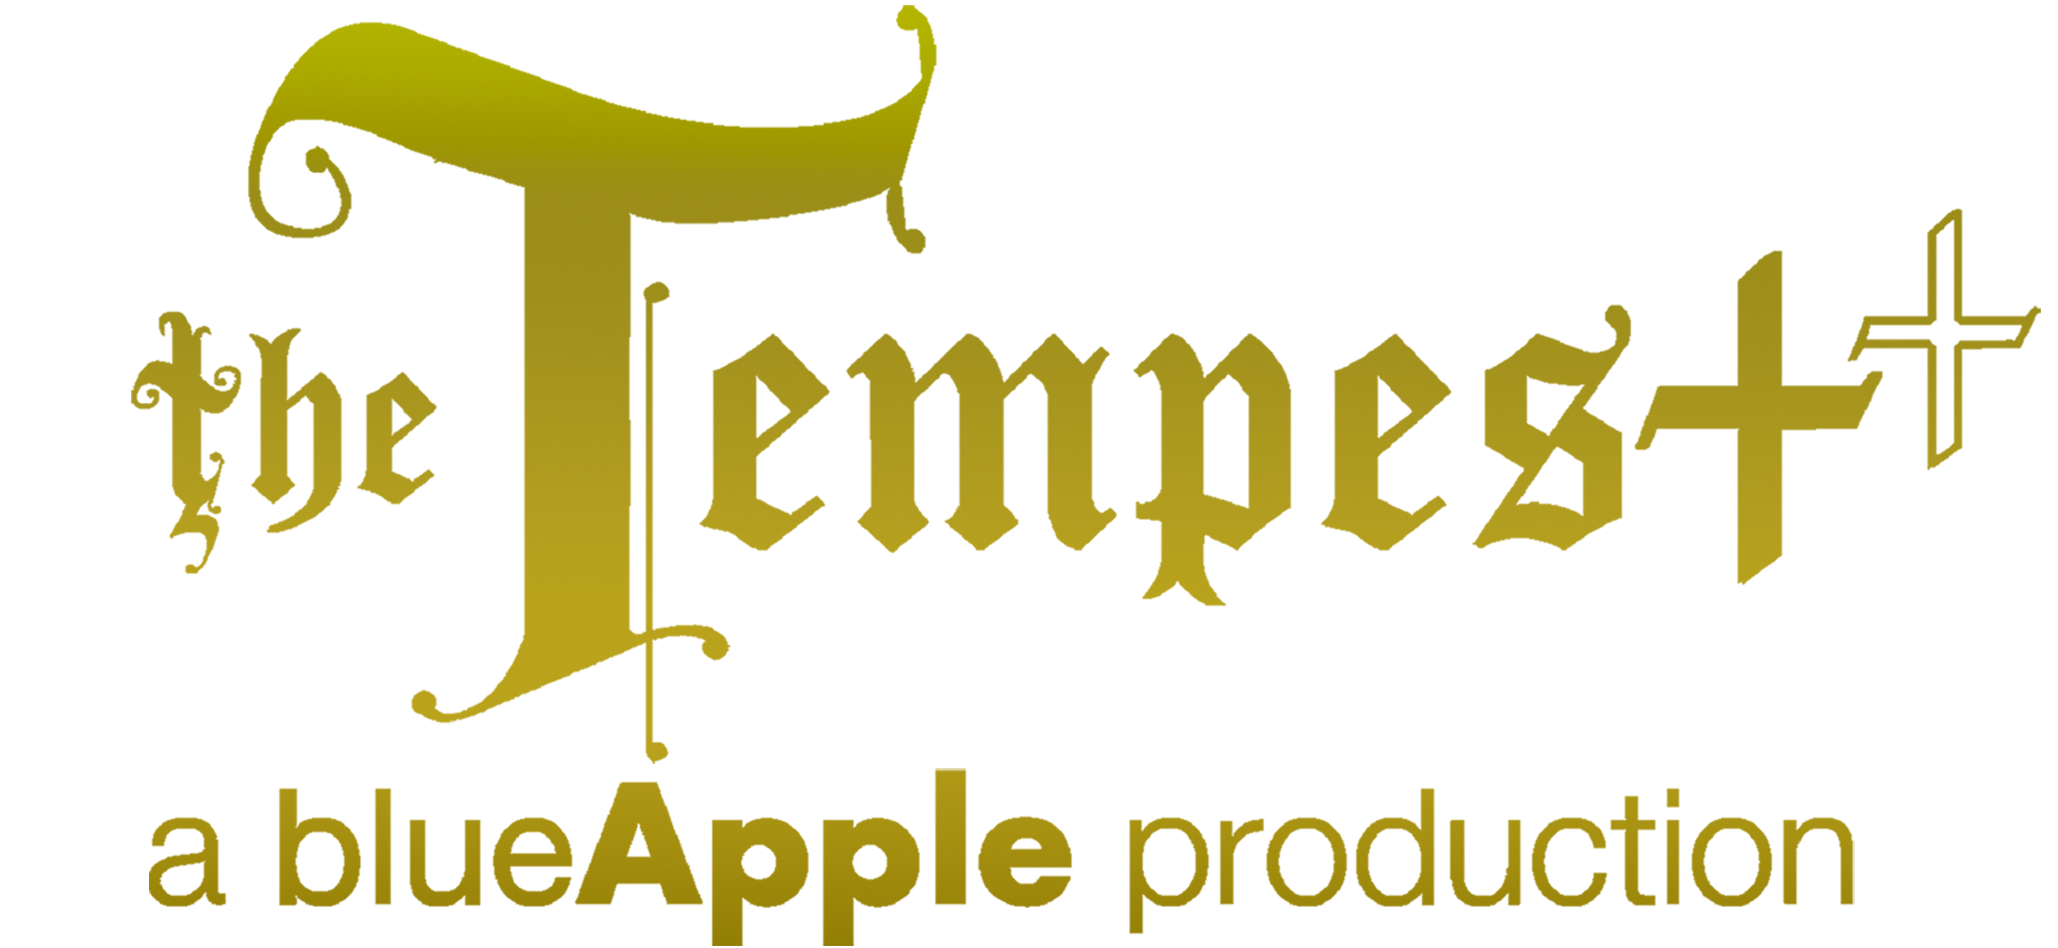 Blue Apple The Tempest logo.png